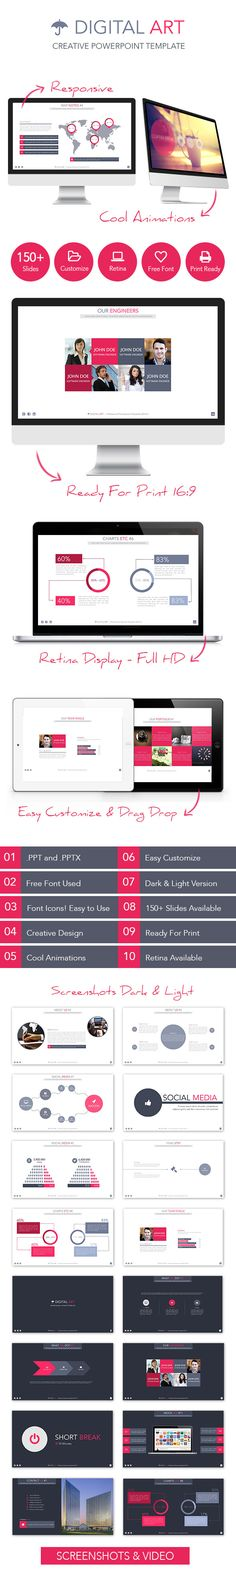 Digital Art - Creative Powerpoint Template - Creative PowerPoint Templates